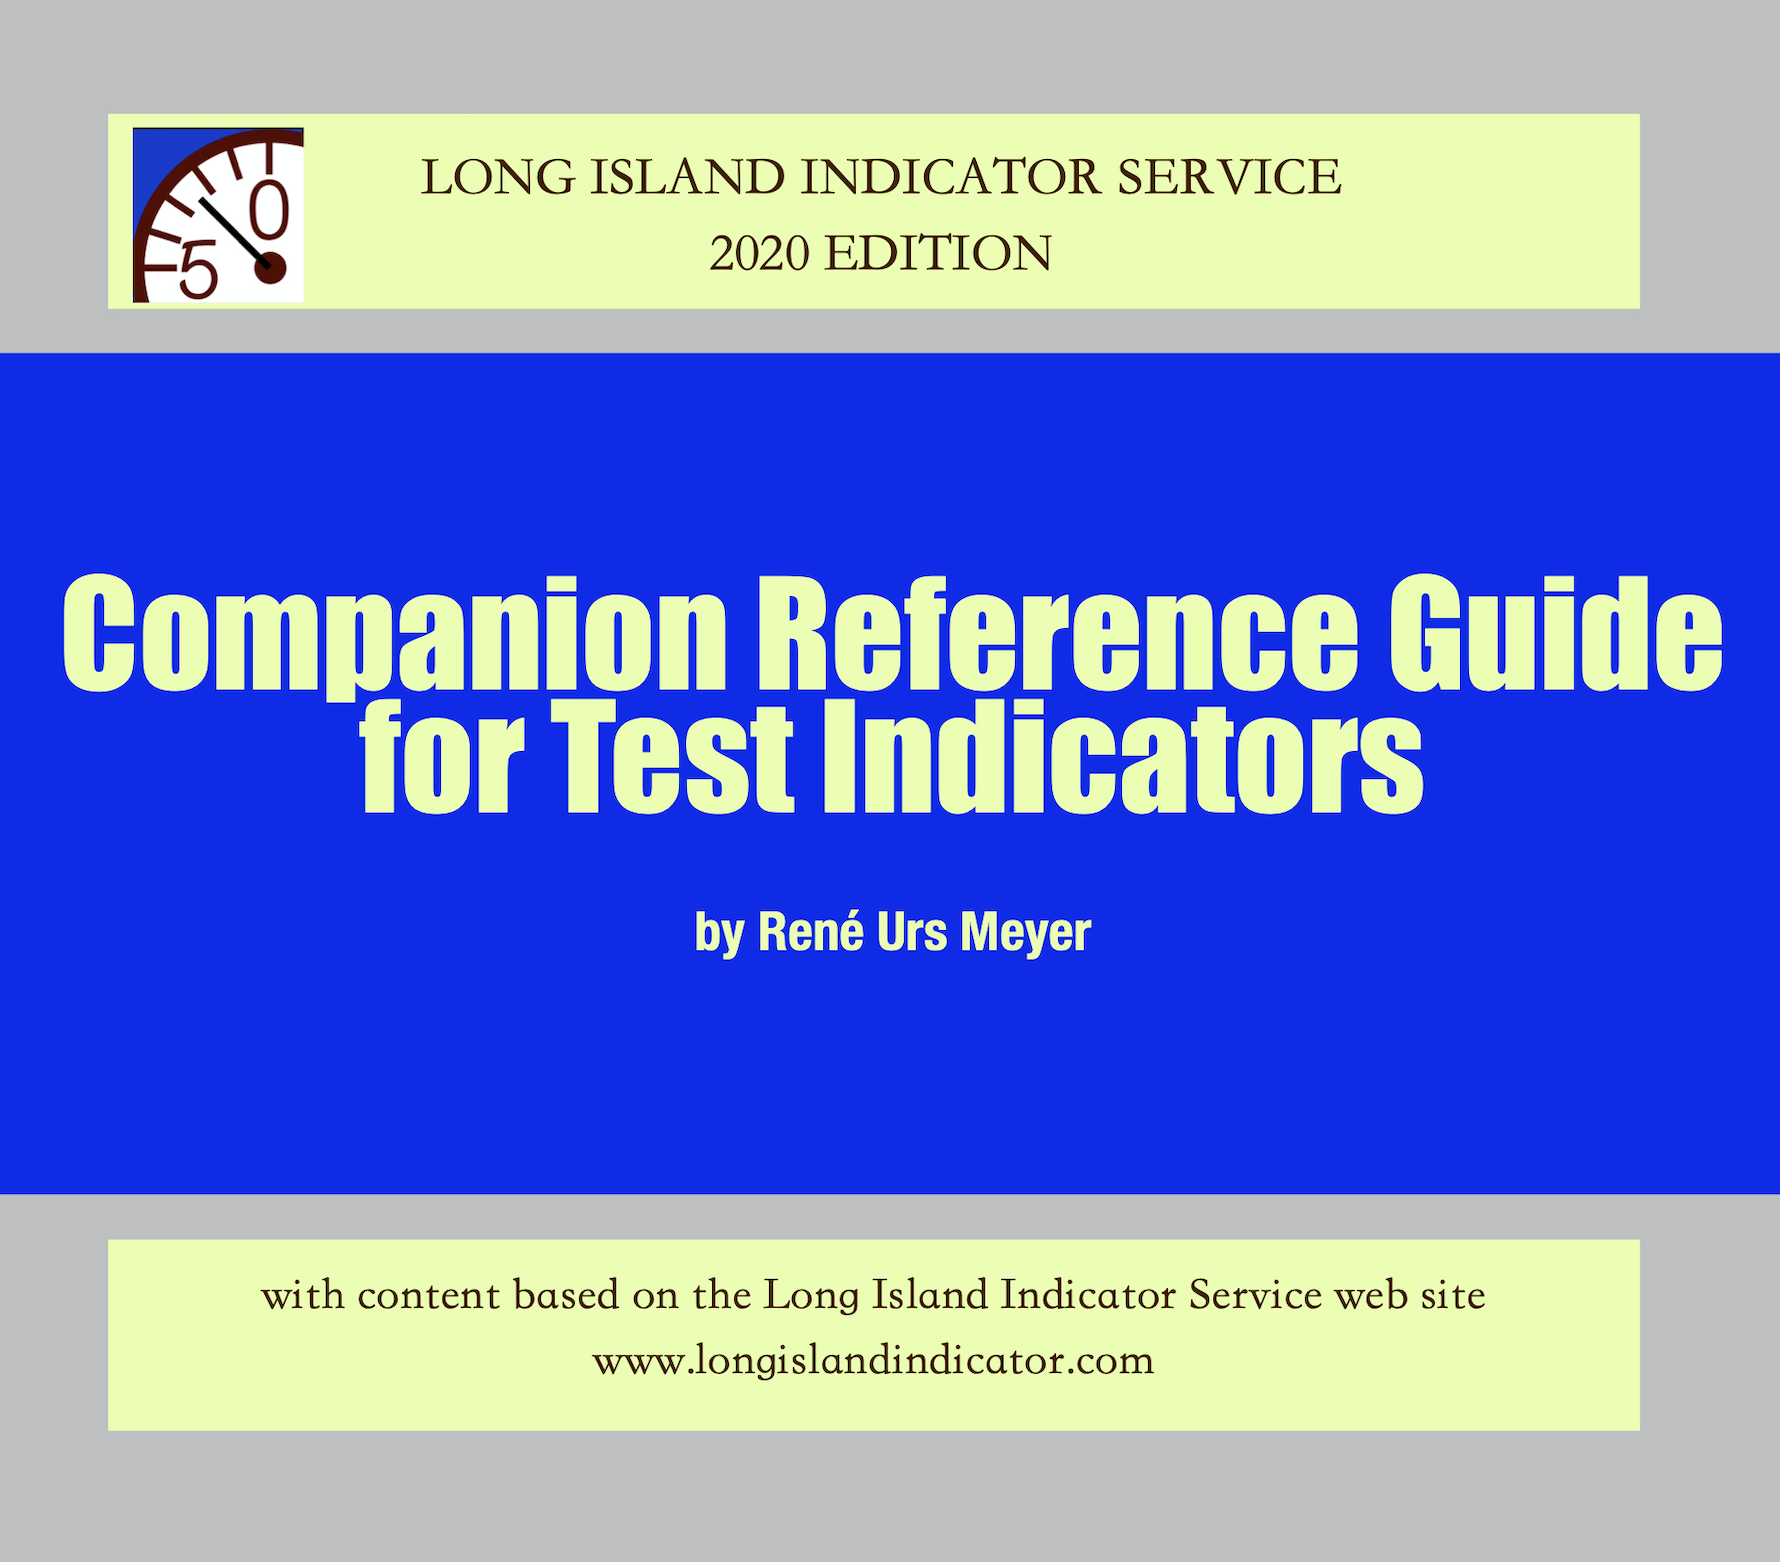 Companion Reference Guide for Test Indicators by René Urs Meyer